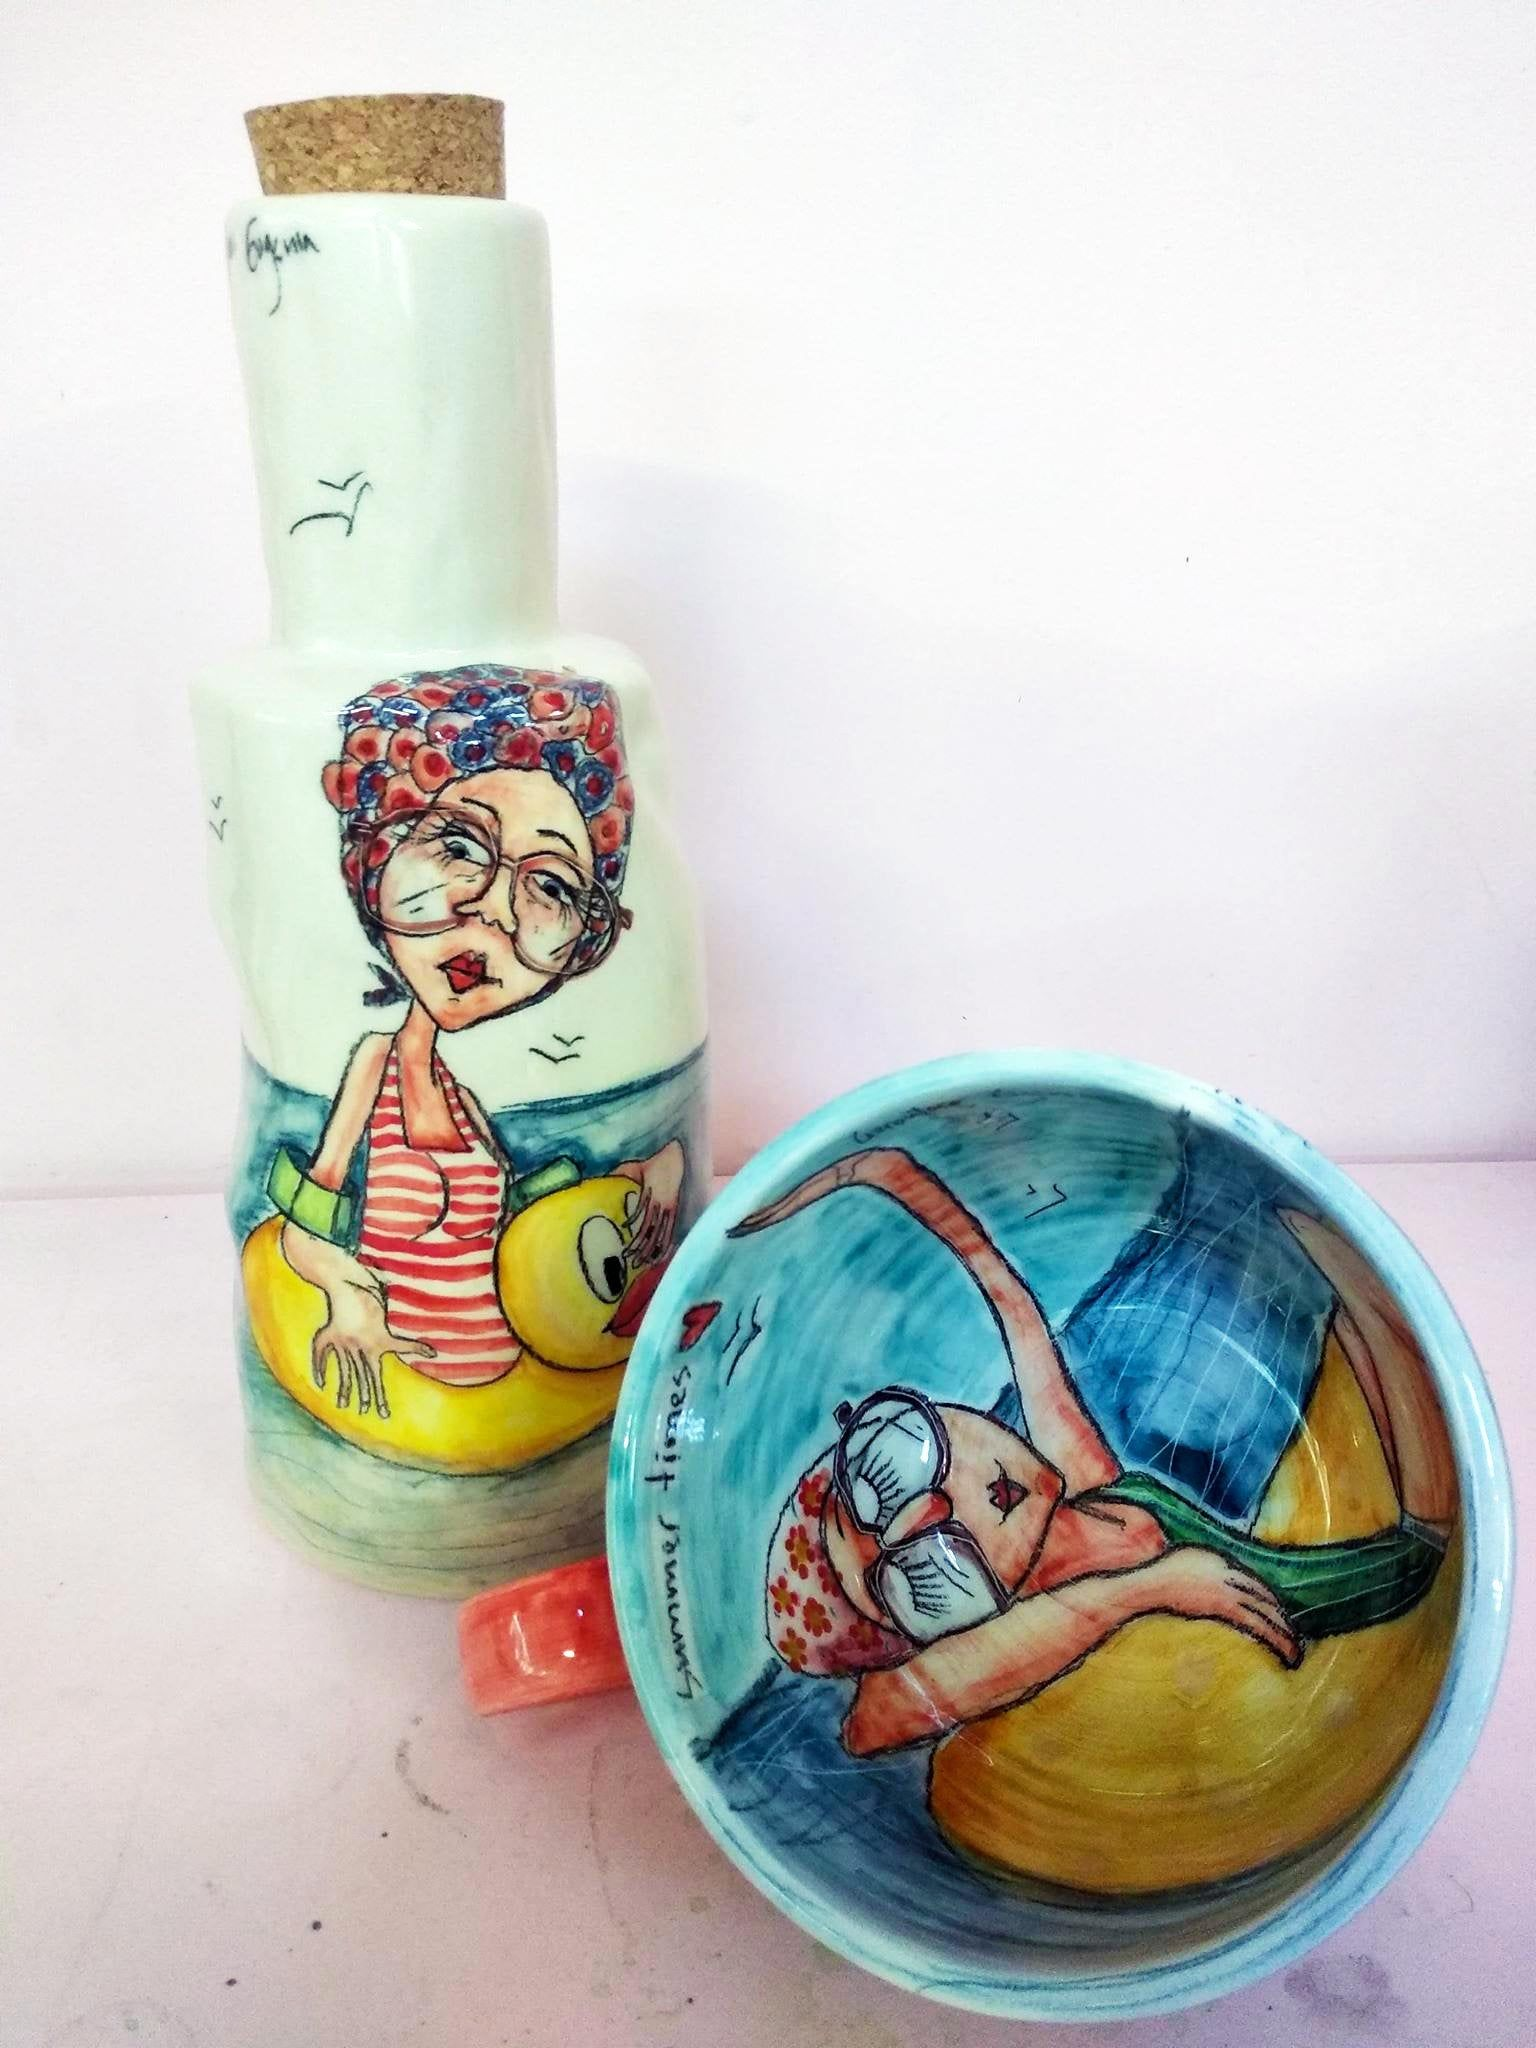 Excited to share the latest addition to my #etsy shop: Summer is here! This ceramic set consists of a large bottle, ideal for milk & an XL cup, perfect for your cereal. Handmade and handpainted!  #ceramics #art #unique #etsyseller #etsyhandmade #giftforher